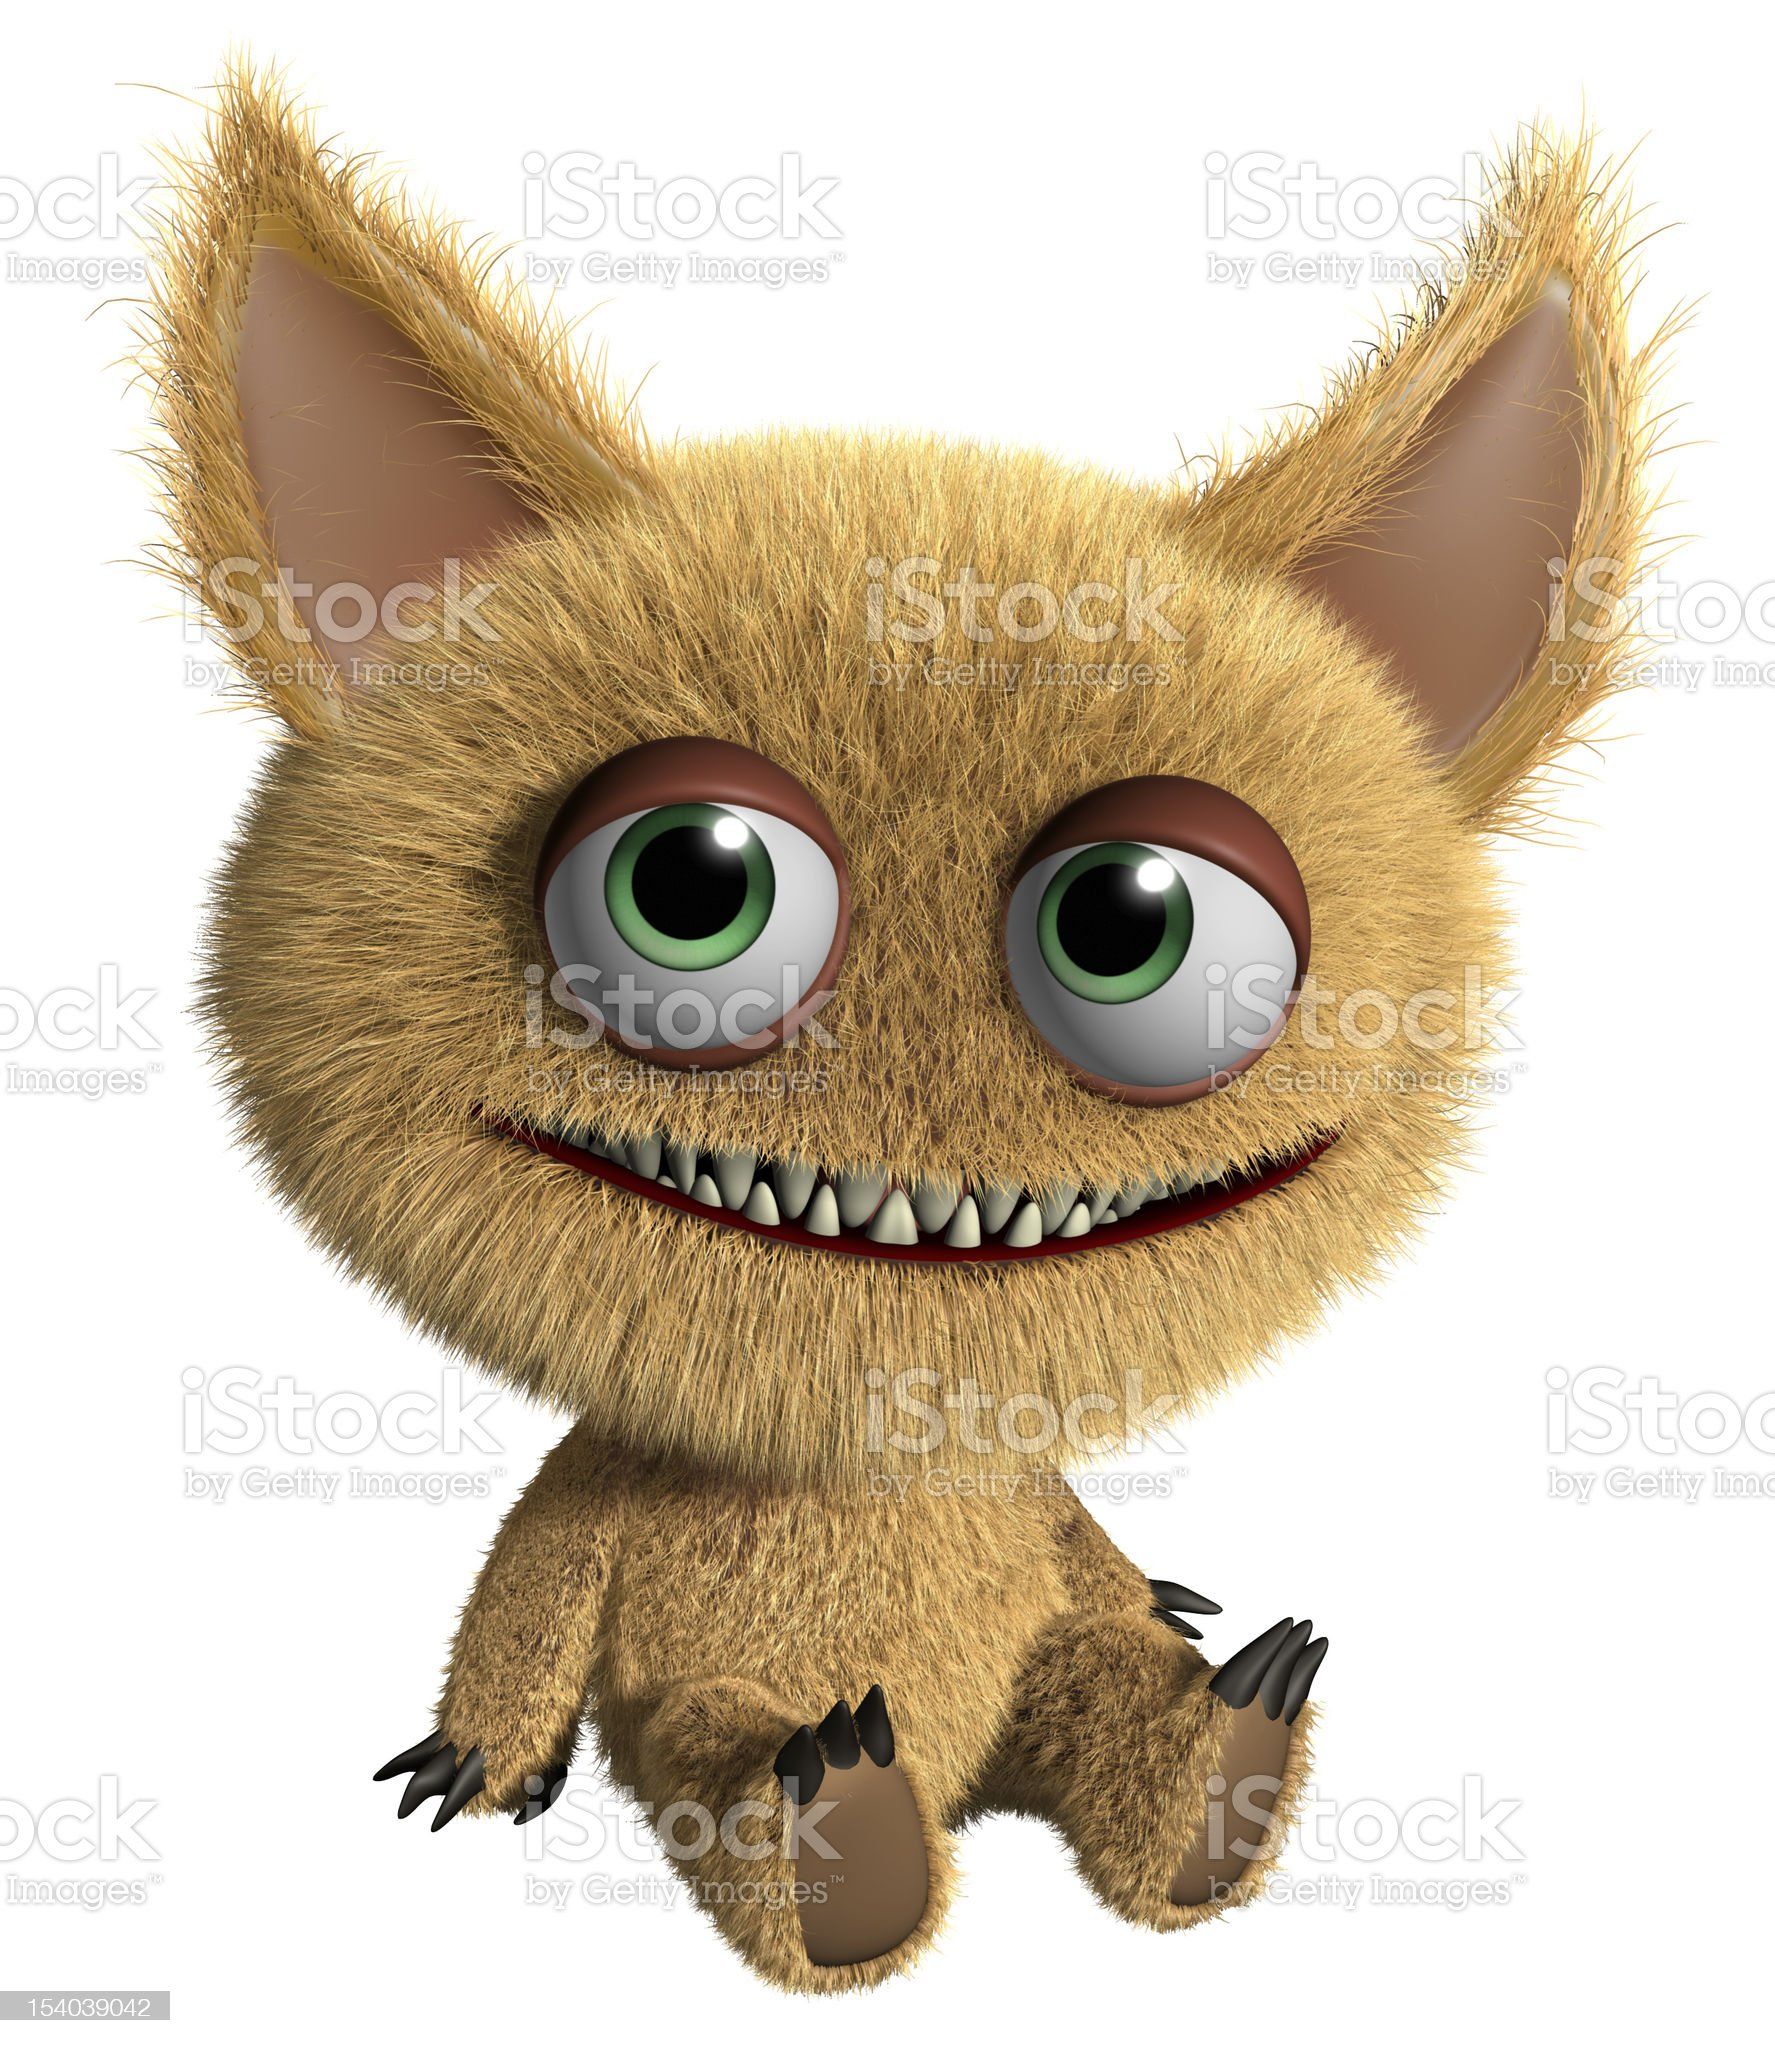 A furry cartoon gremlin on a white background royalty-free stock photo